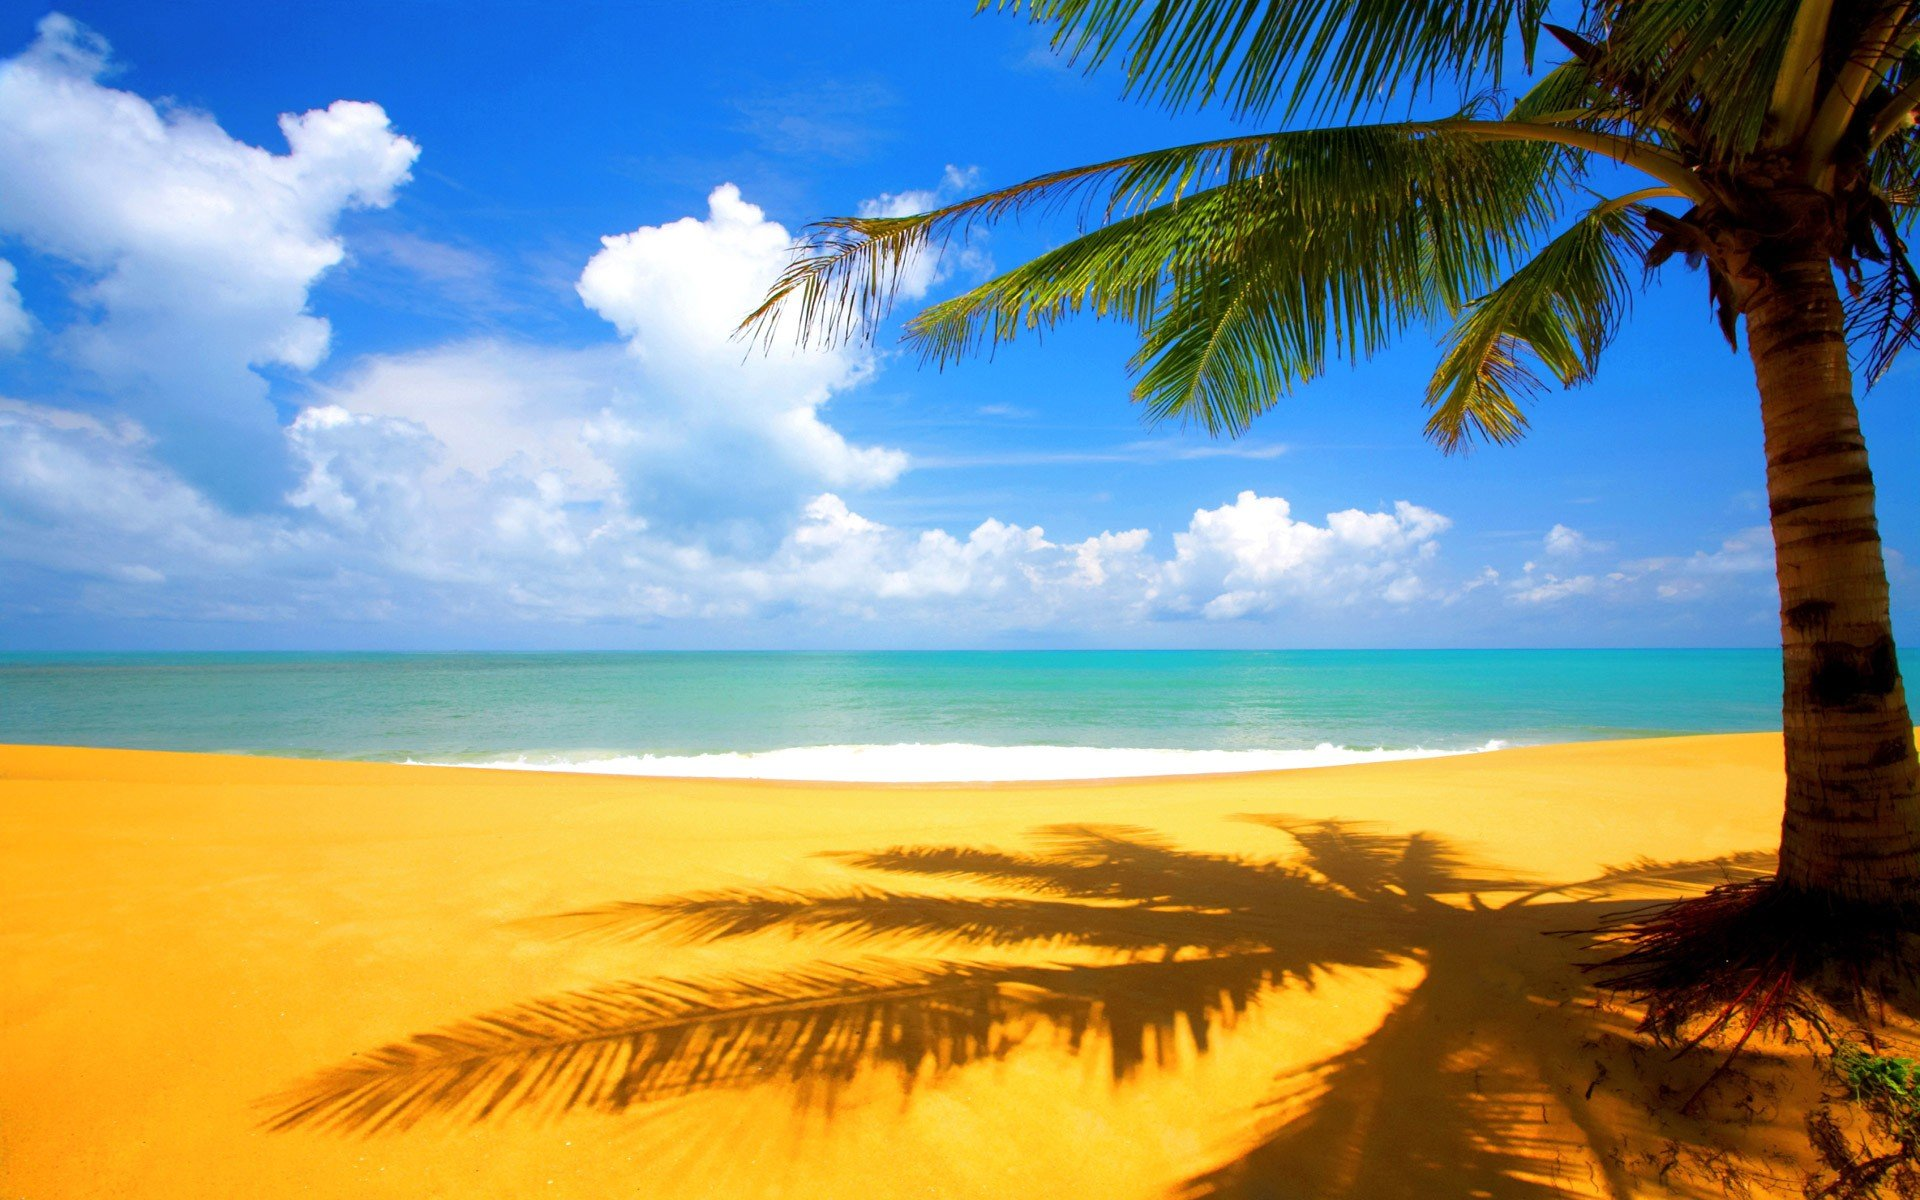 wallpapers beach photos beach pictures beach images beach images beach 1920x1200